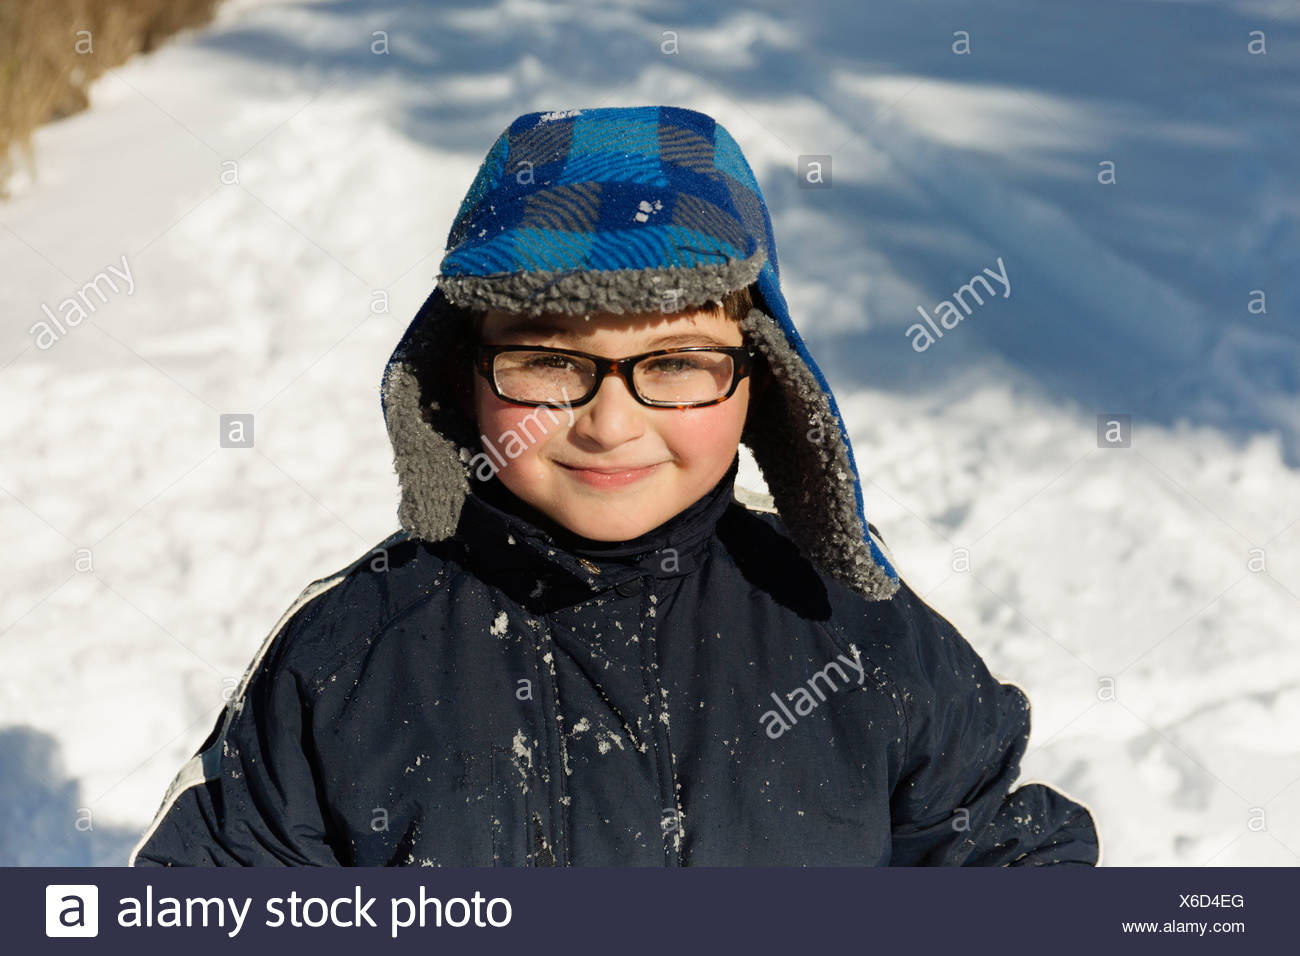 e72dfea2a3a37 Winter Hat Stock Photos   Winter Hat Stock Images - Alamy